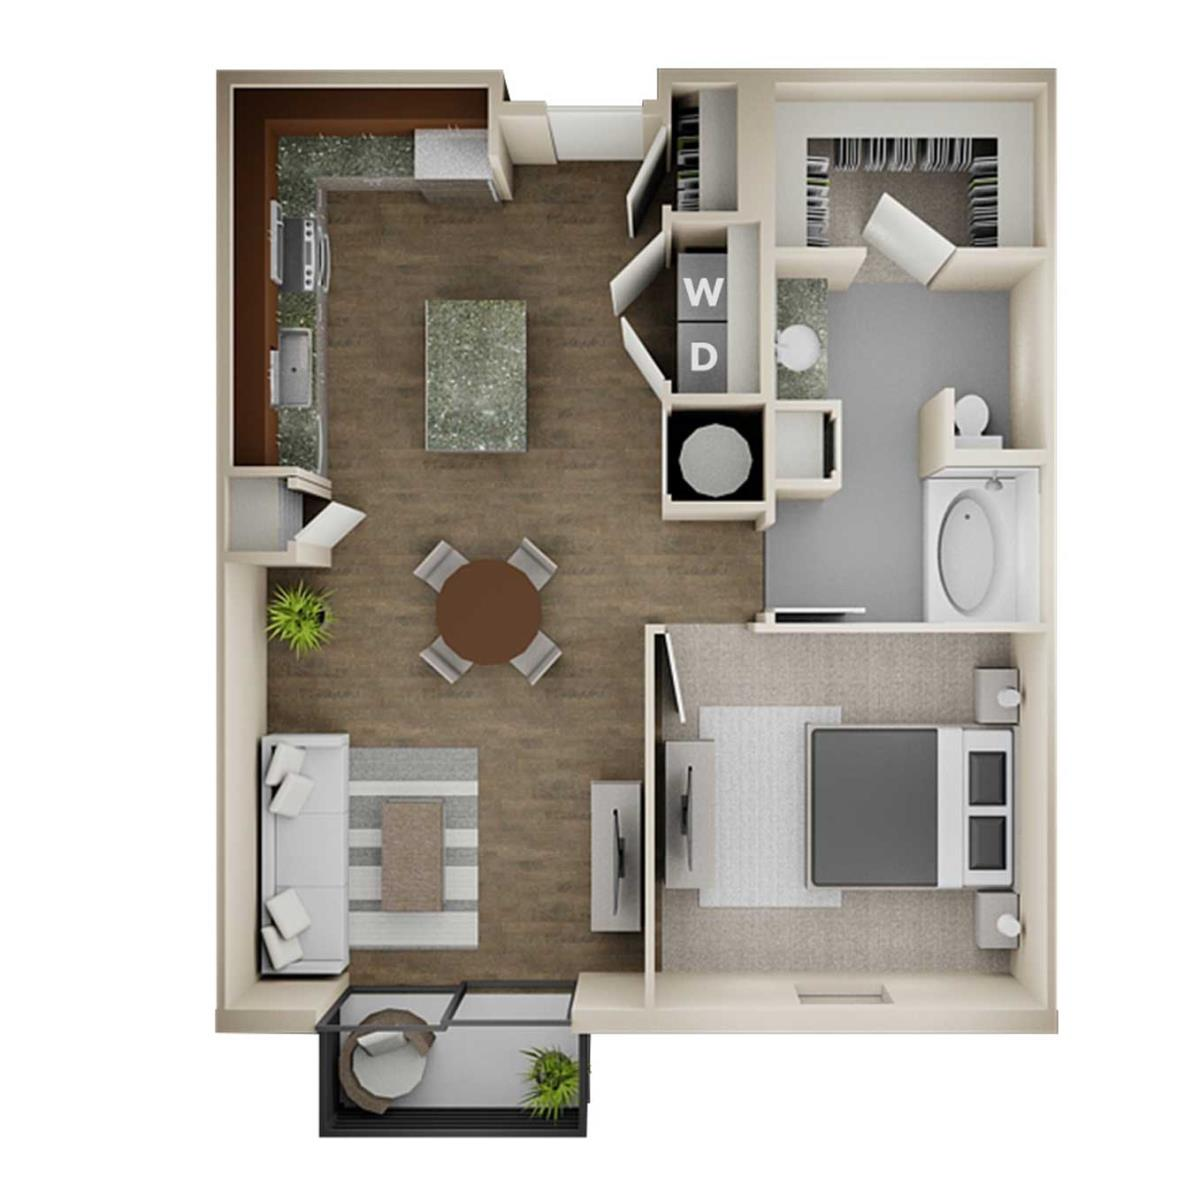 796 sq. ft. 1B floor plan